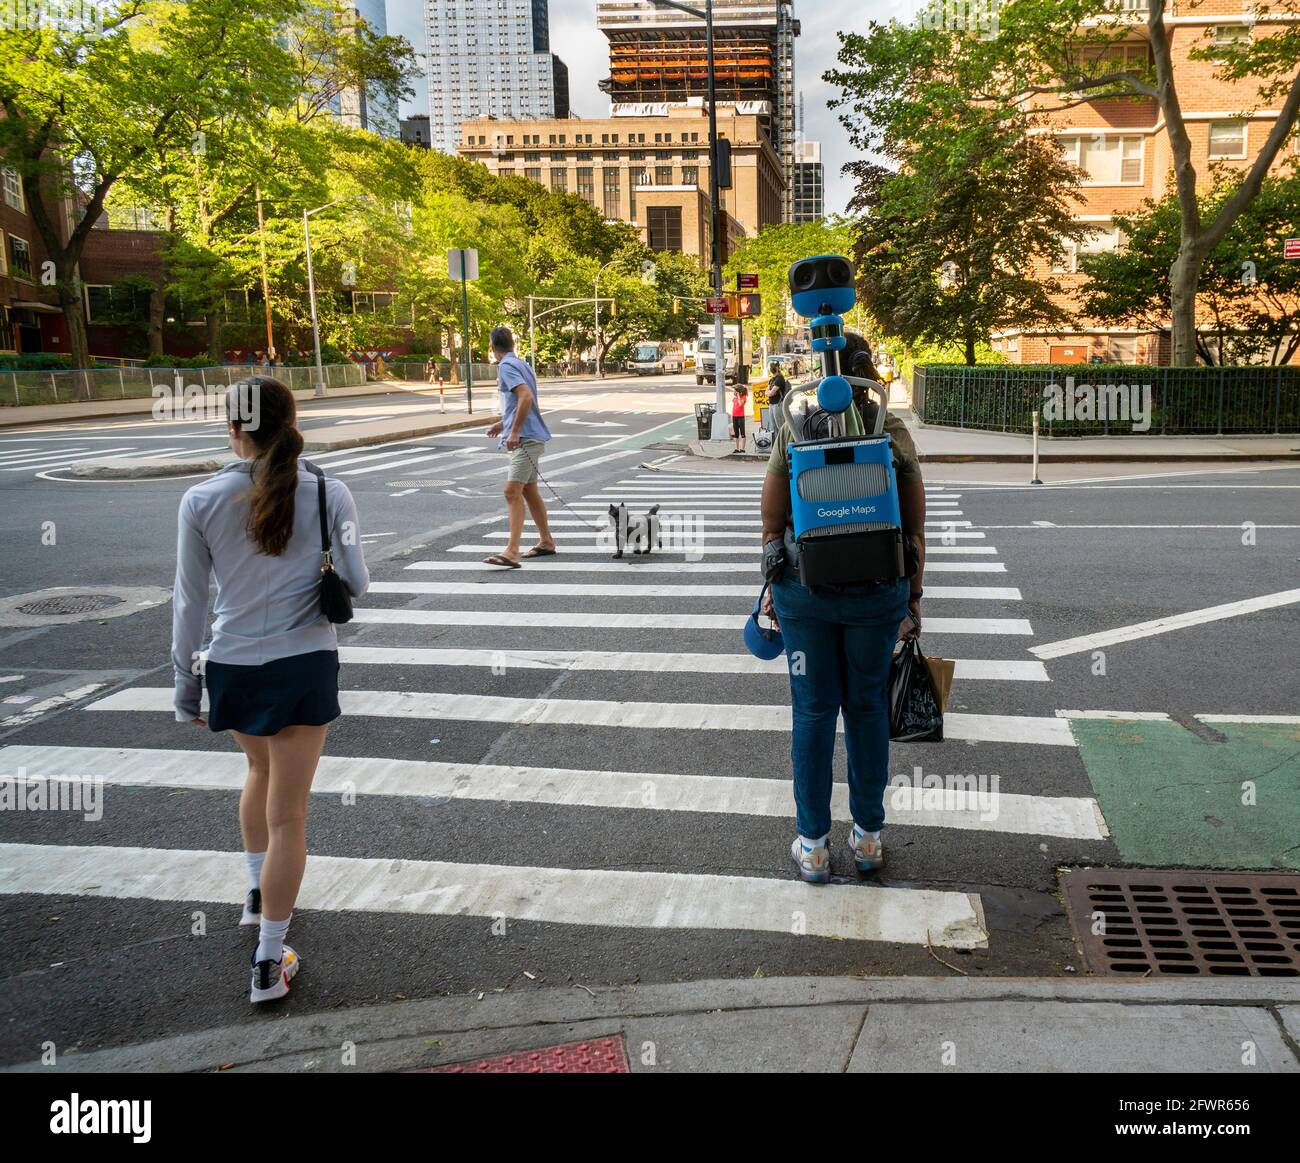 New York, USA. 20th May, 2021. A Google Maps walker in Chelsea in New York on Wednesday, May 20, 2021 . (Photo by Richard B. Levine) Credit: Sipa USA/Alamy Live News Stock Photo